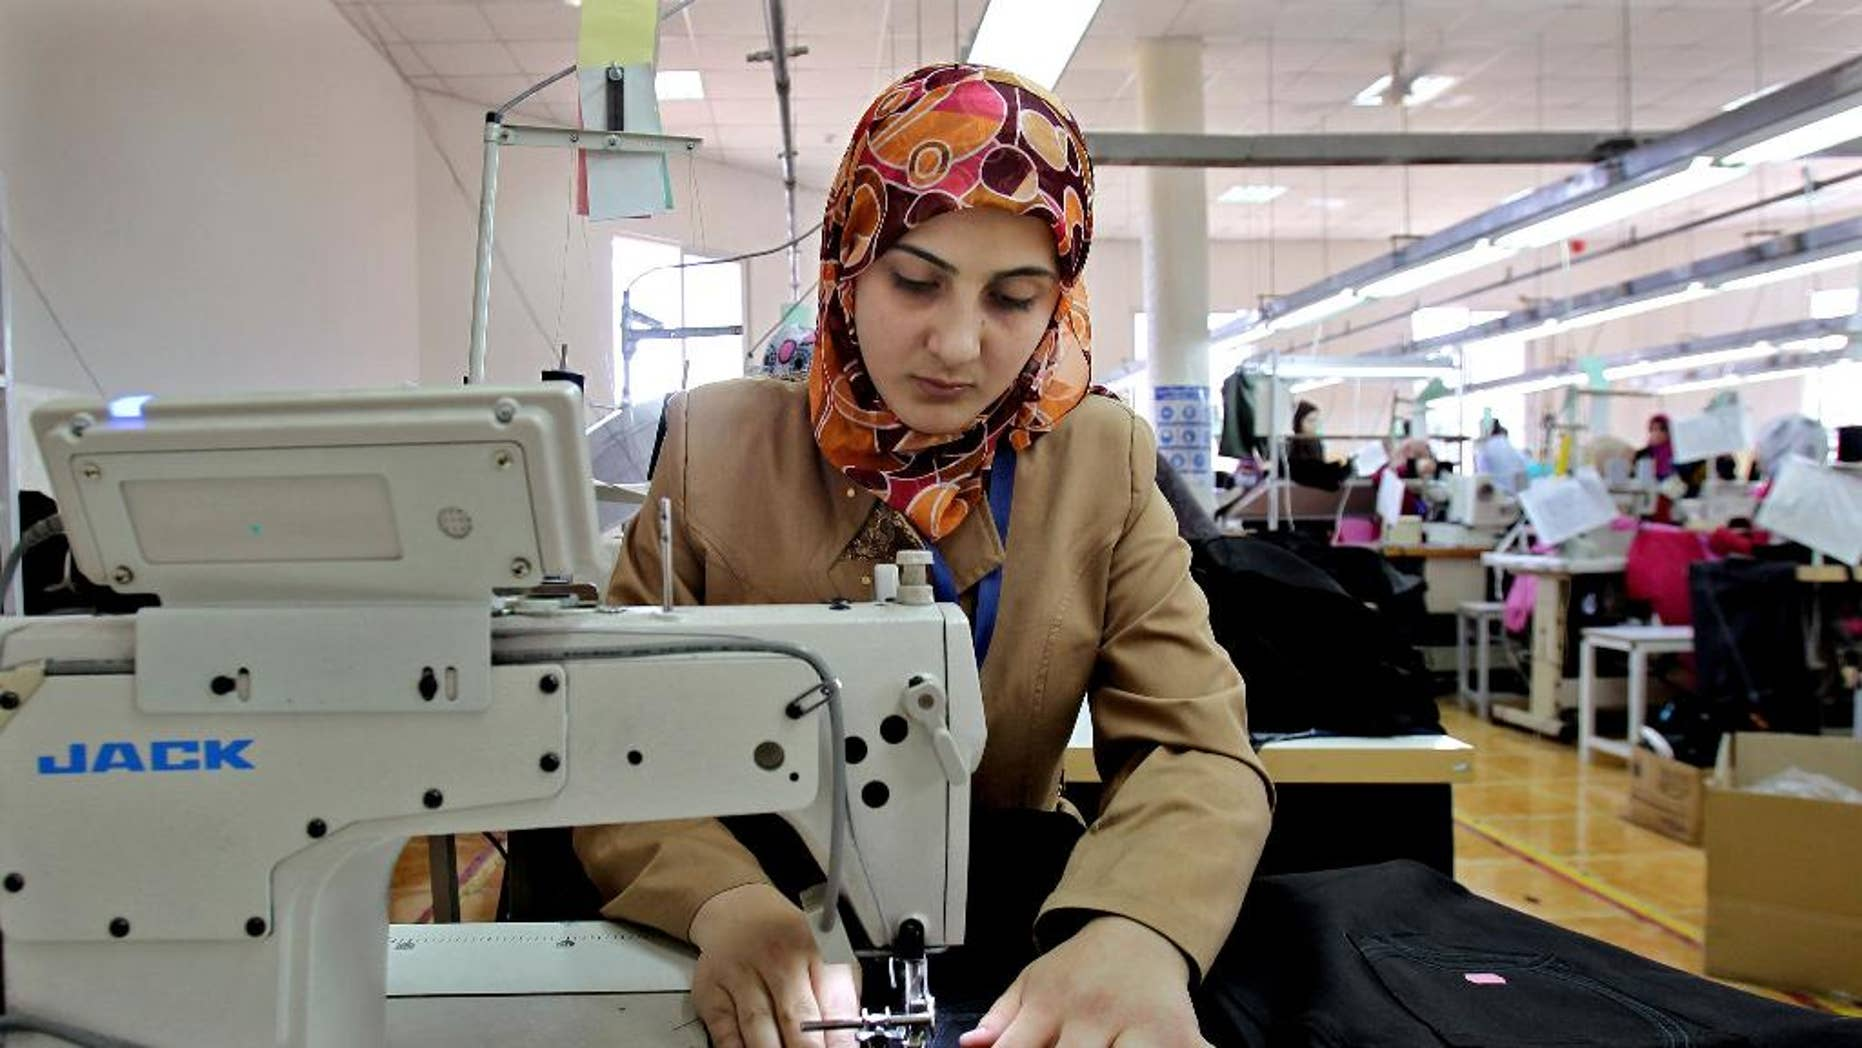 May 20, 2015: Jordanian women sew jeans for the U.S. market in a garment factory in the village of Kitteh in northern Jordan. The factory opened last year and created employment in an area where options had largely been limited to men joining the army and women staying home.